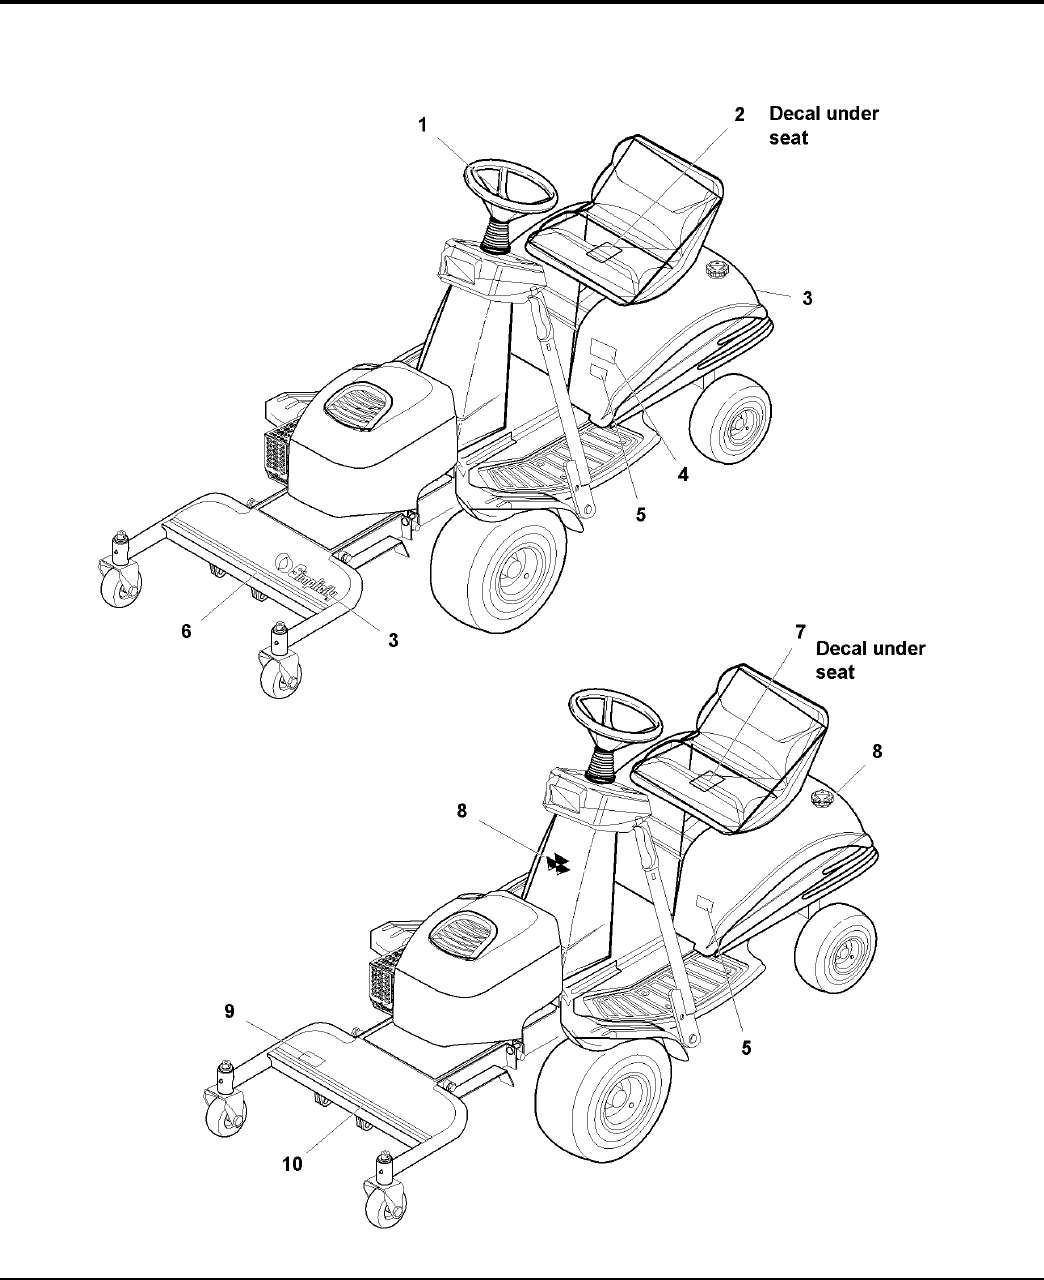 Page 28 of Simplicity Lawn Mower Lancer / 4400 User Guide